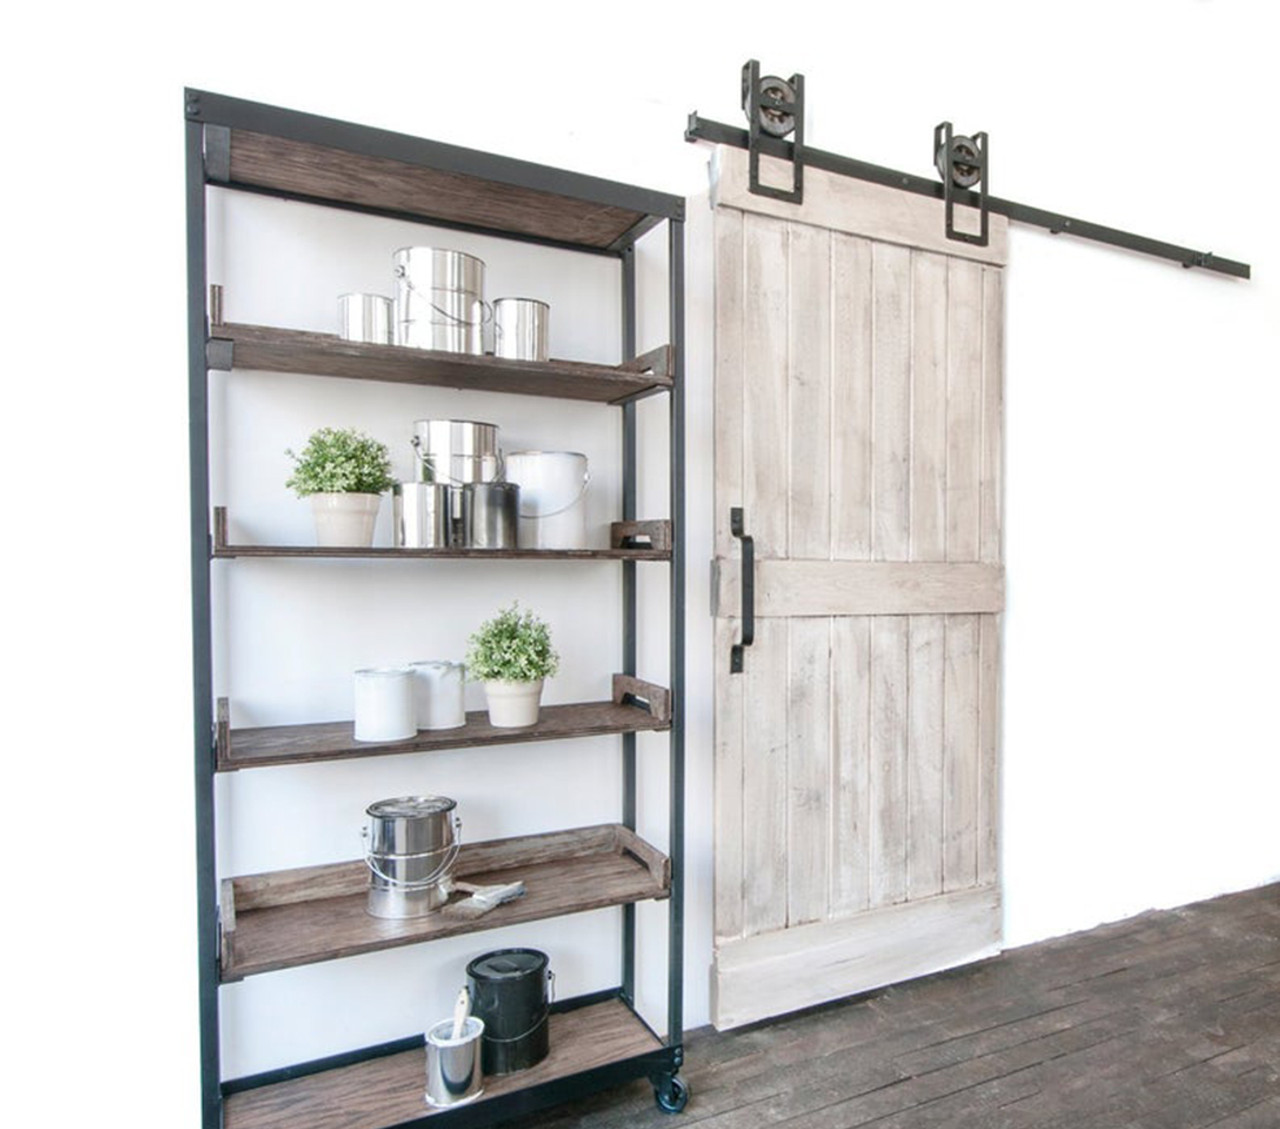 25-off-barn-doors